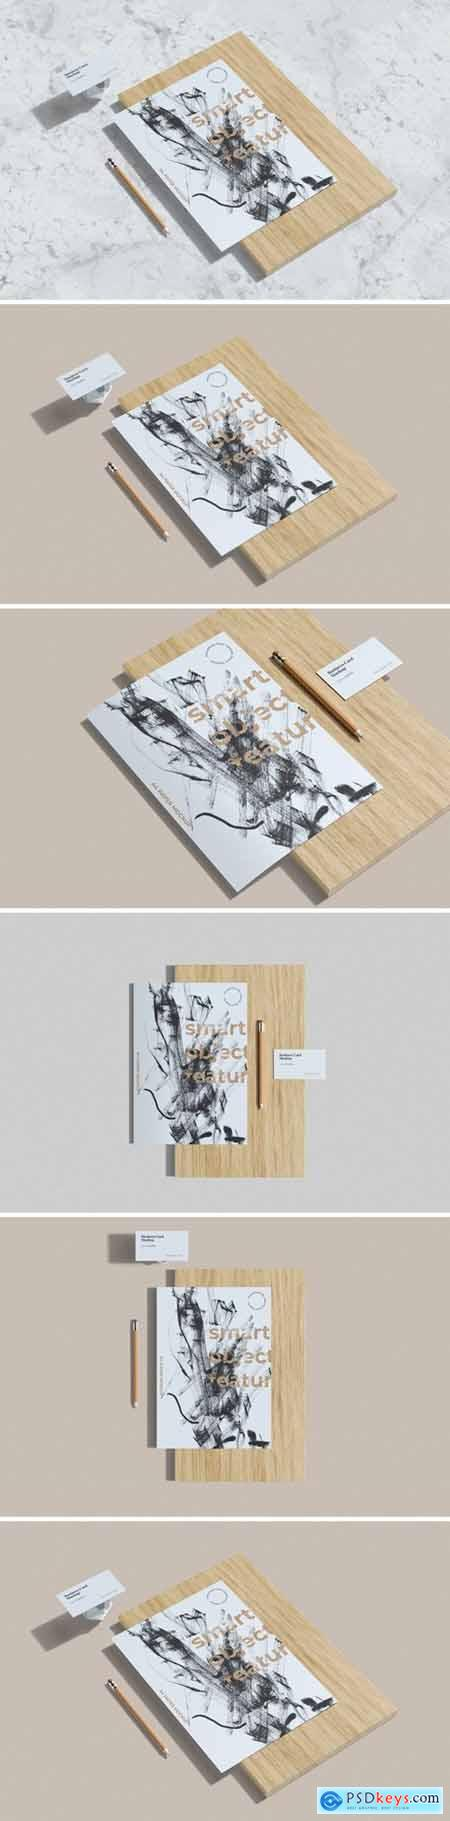 Business Card and A4 Paper Mockups